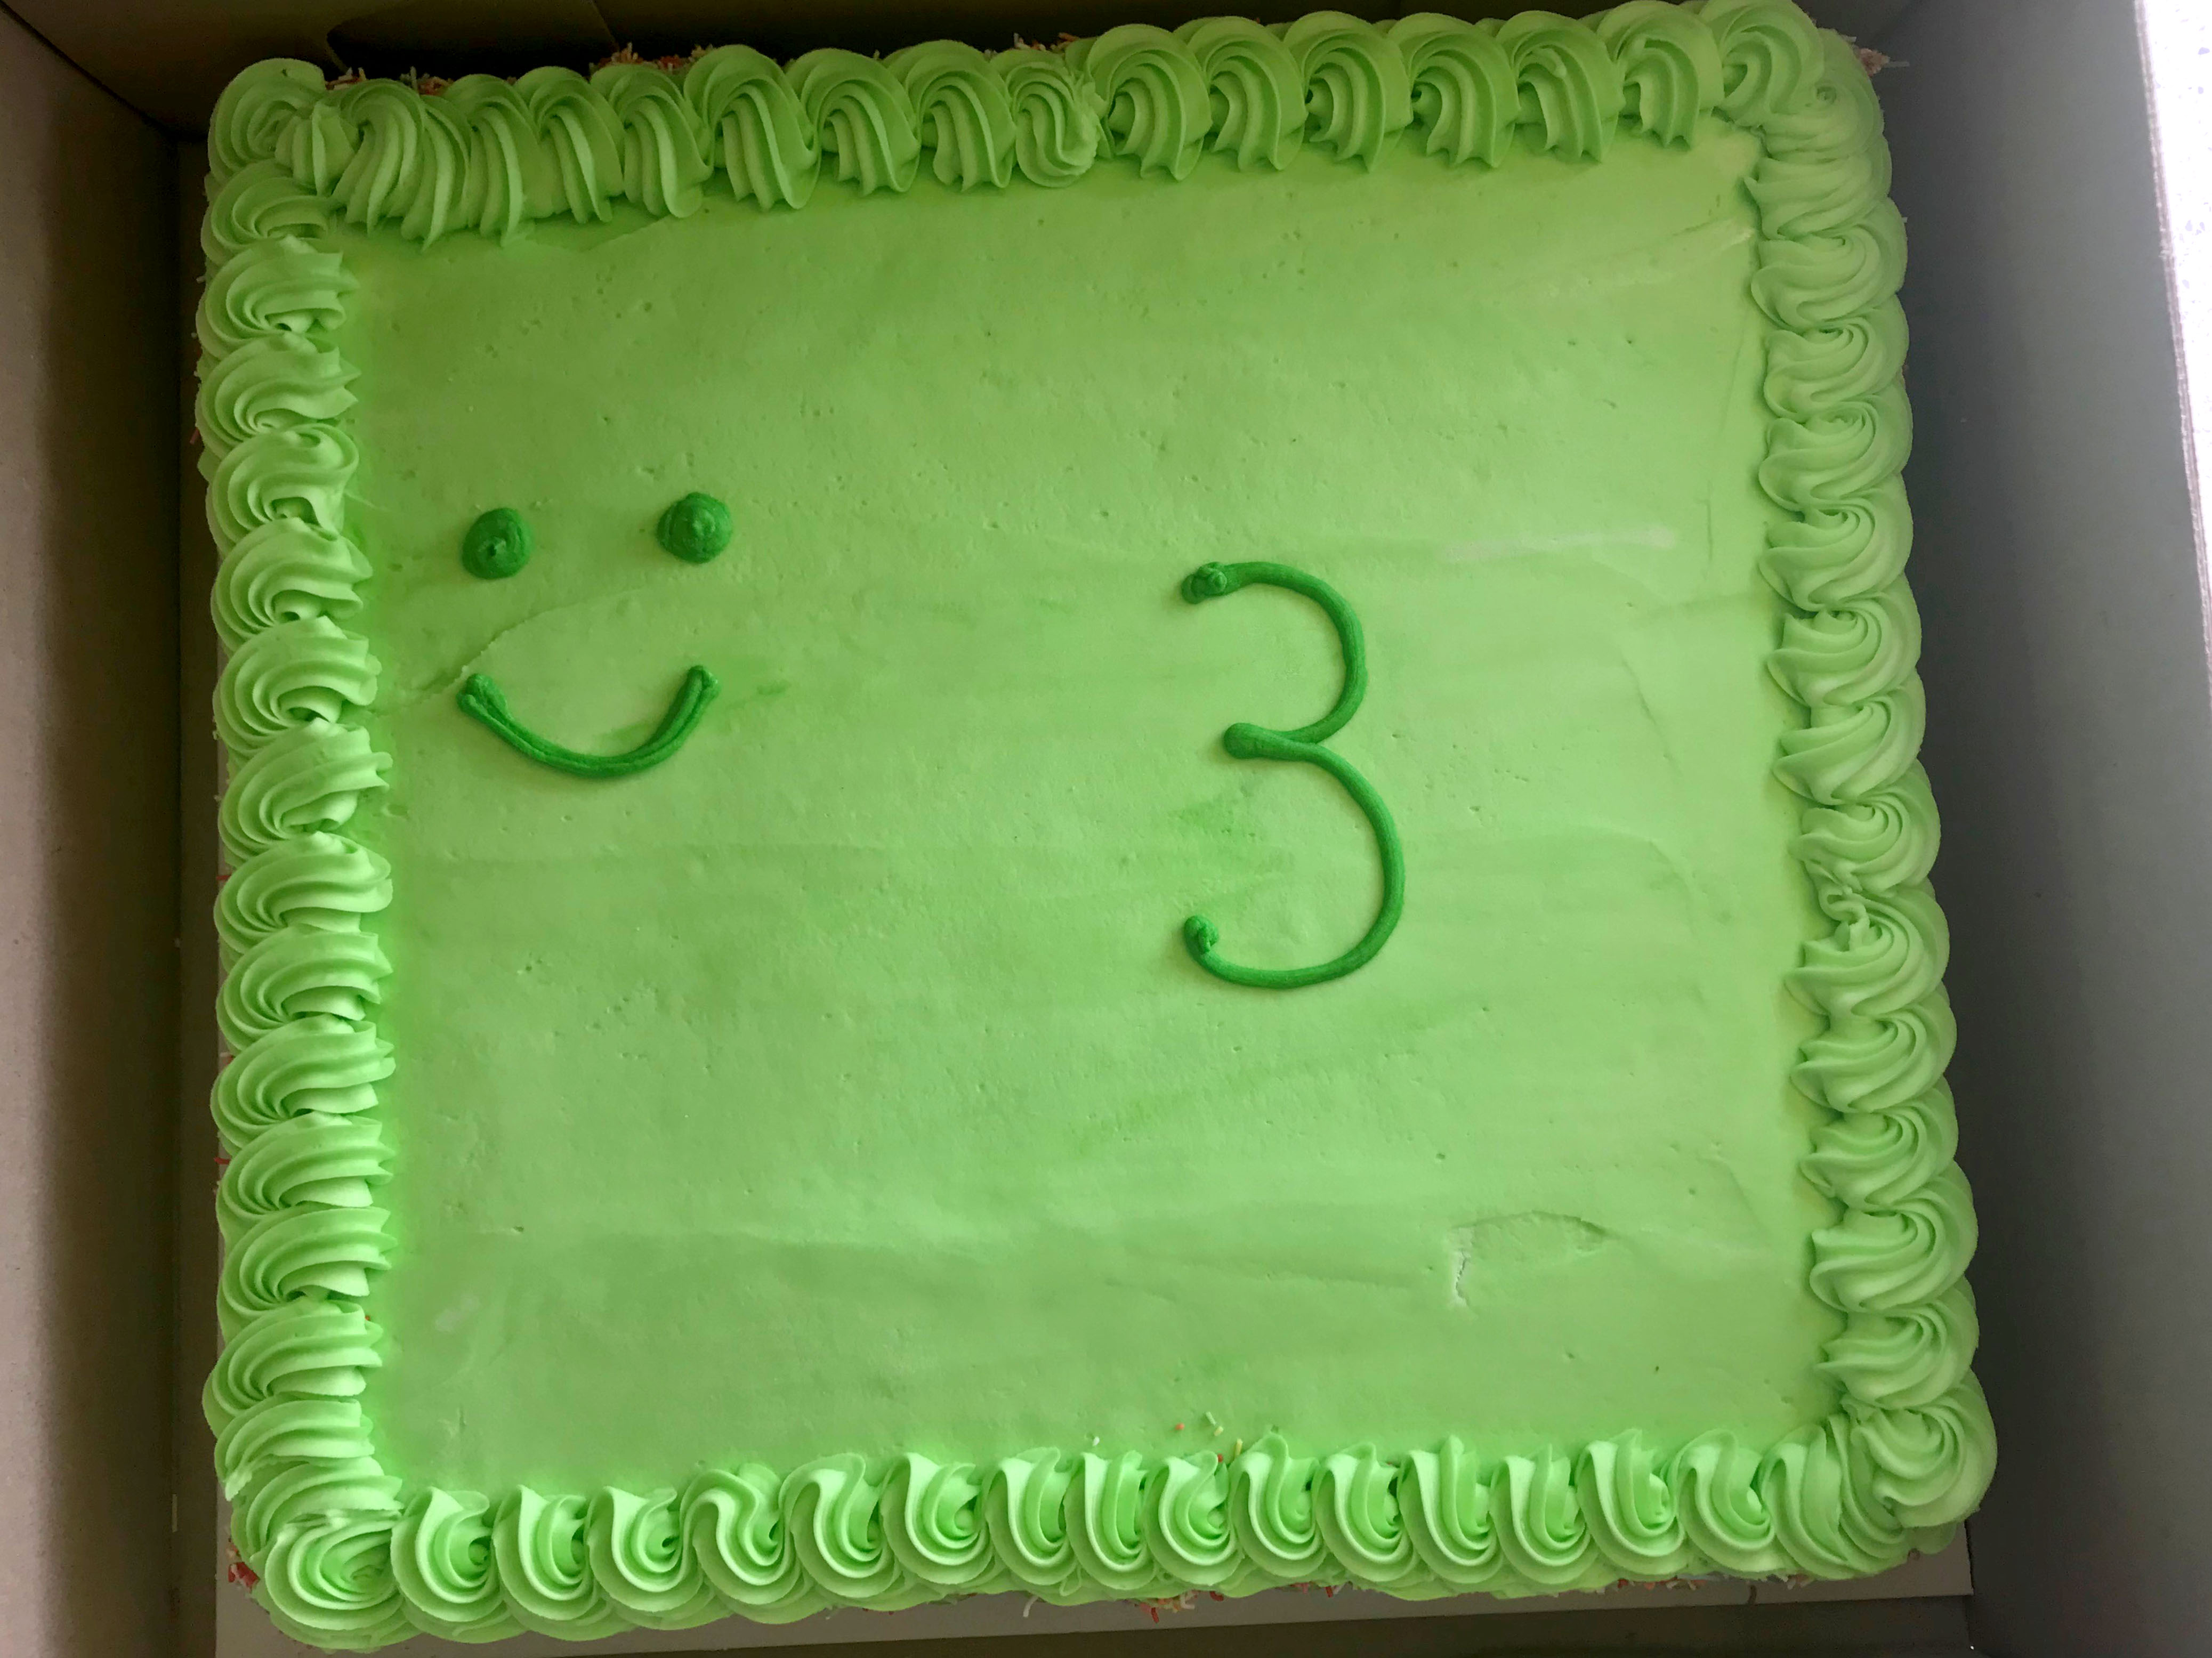 The Cake Shane Hallford Picked Up For His Sons Third Birthday Credit Caters